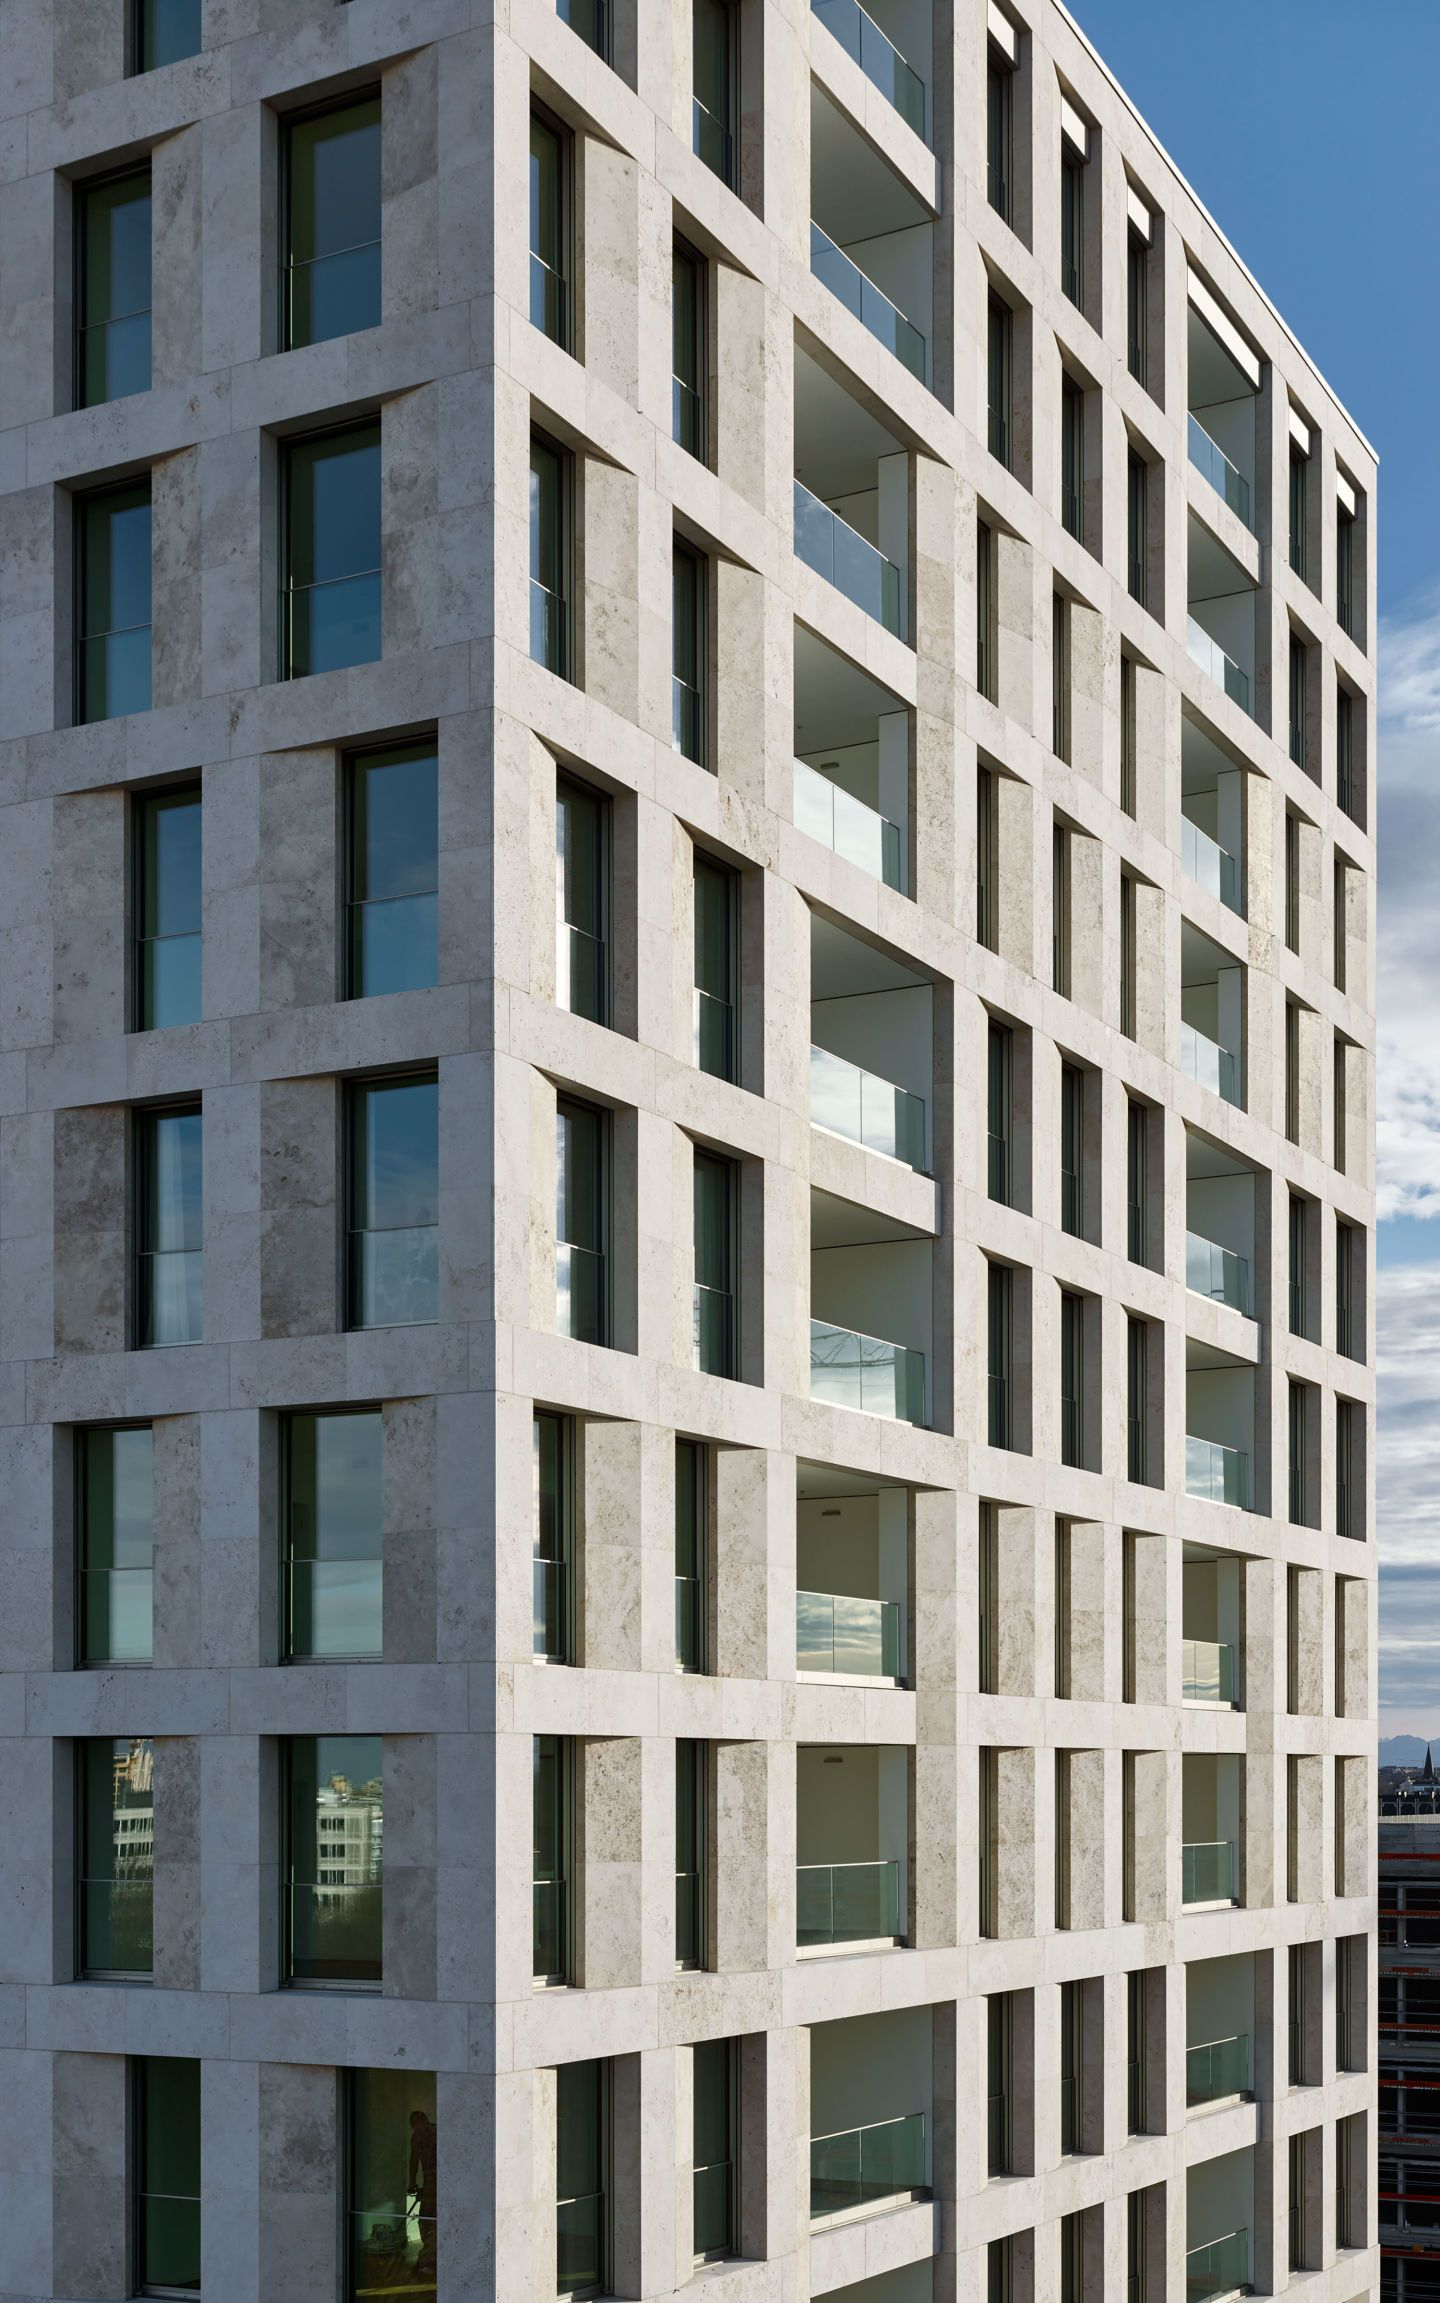 google office munich set. Max Dudler\u0027s New High-rise In Munich Sets The Tone As A Characteristic Landmark Of Google Office Set